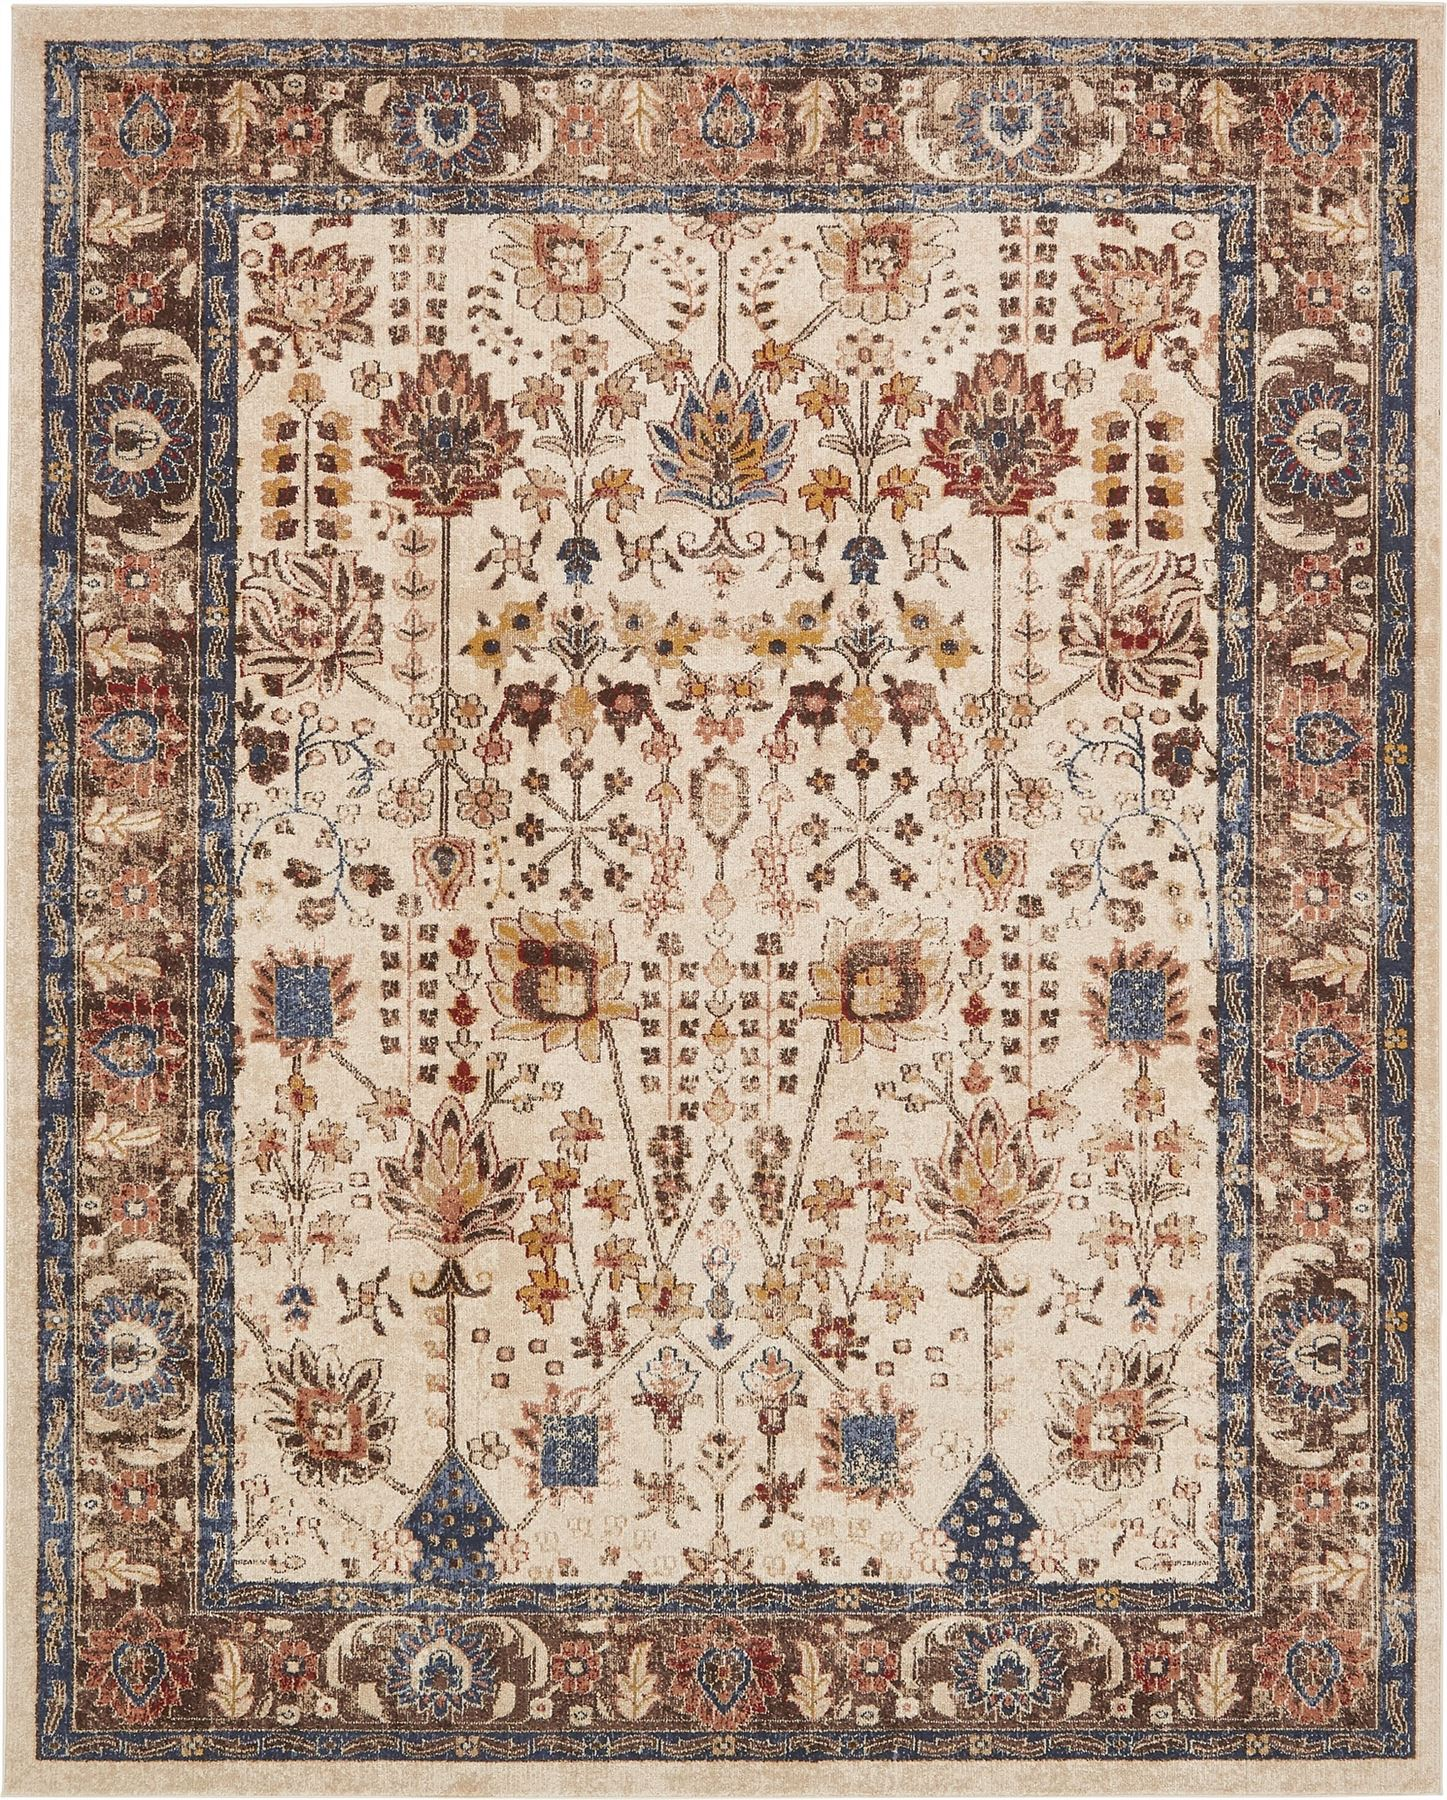 Modern Rugs Vintage: Fringeless Traditional Rug Overdyed Vintage Carpet Floor